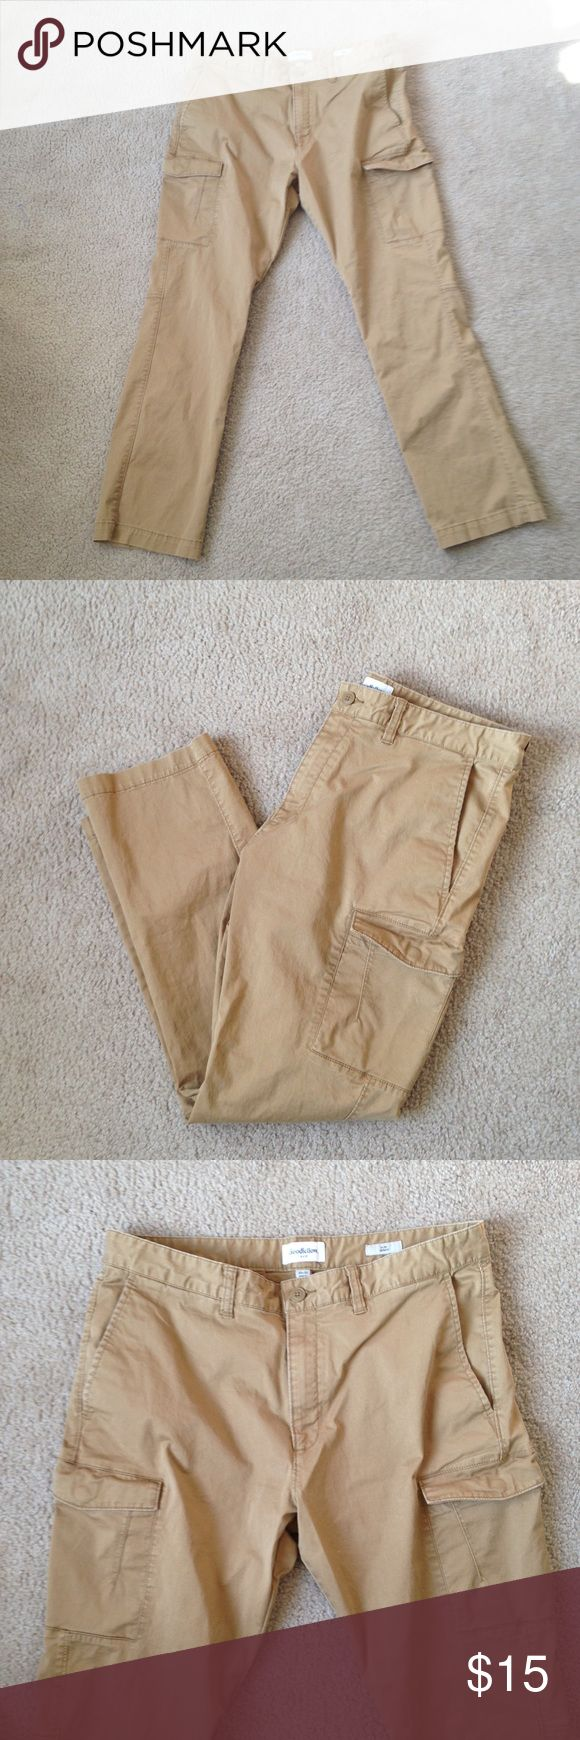 Men's khaki chinos 36x30 Size 36 x 30 men's slim straight tan chinos with a cargo pocket. Brand is Goodfellow & co., bought from Macy's about a month ago. Excellent condition.  15% off 2+ bundles! Goodfellow & Co. Pants Chinos & Khakis